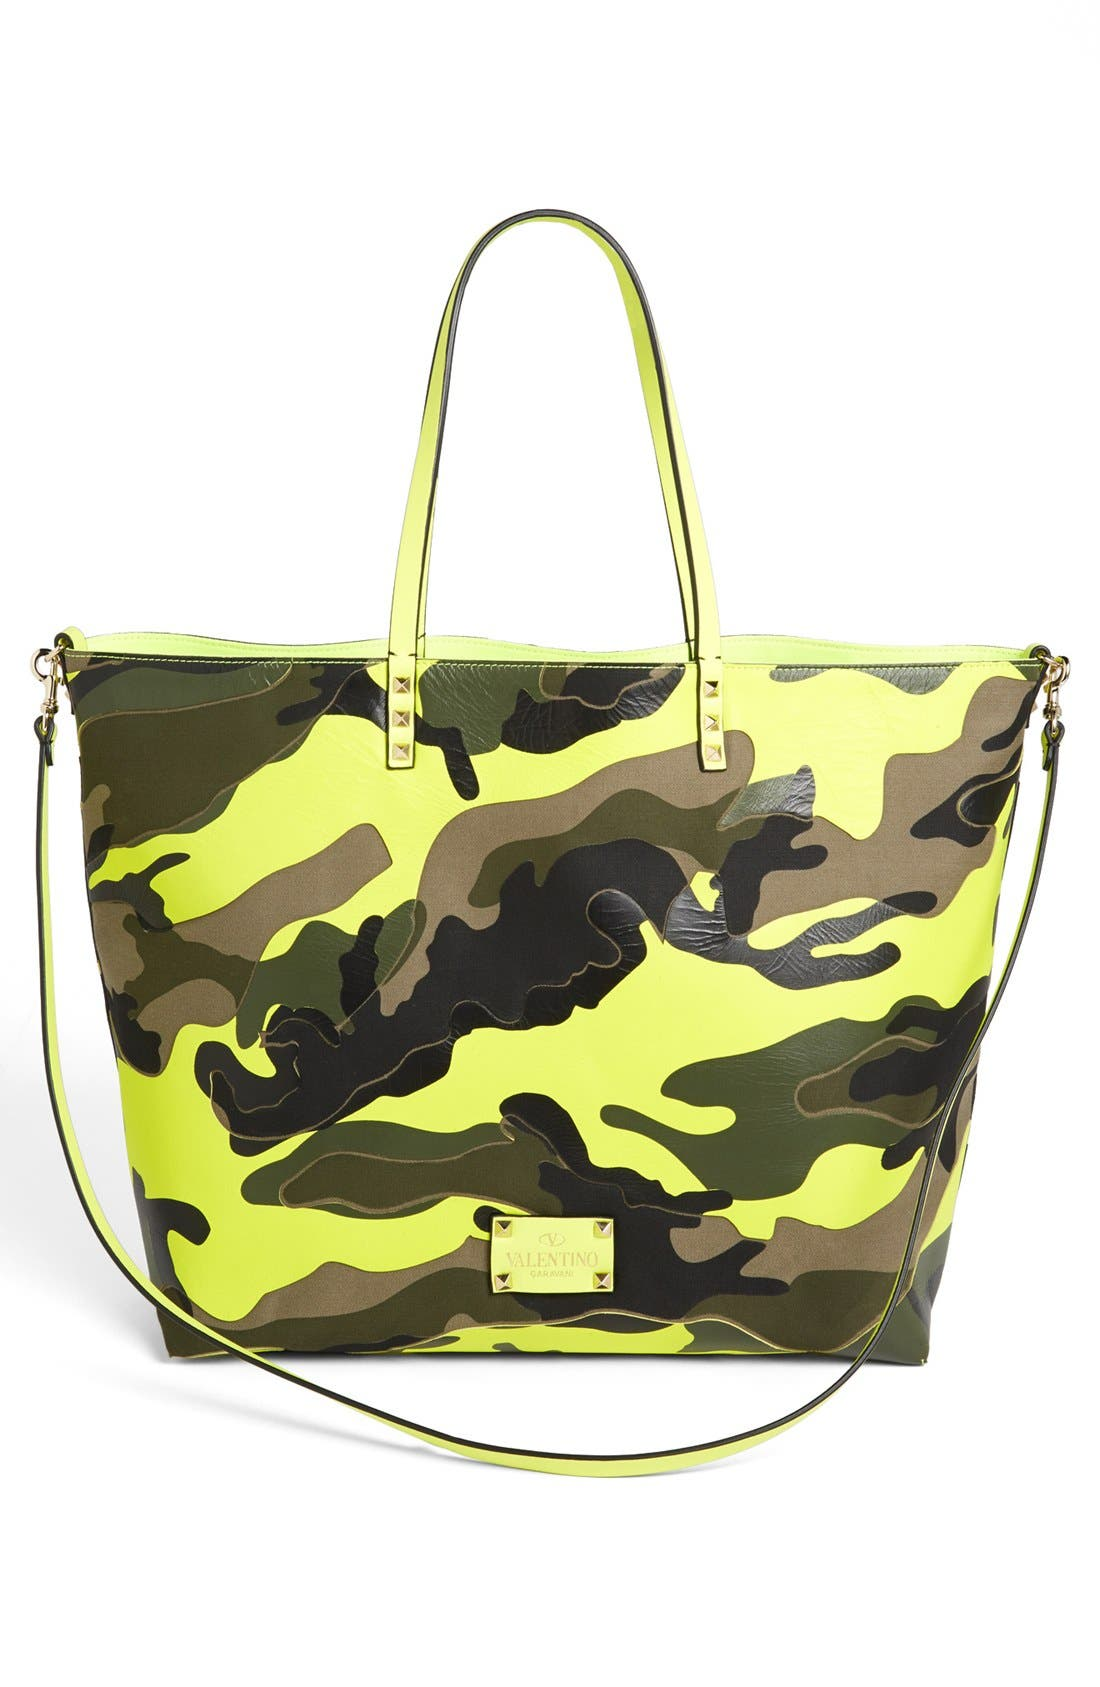 Alternate Image 1 Selected - Valentino 'Rockstud - Camo' Reversible Tote